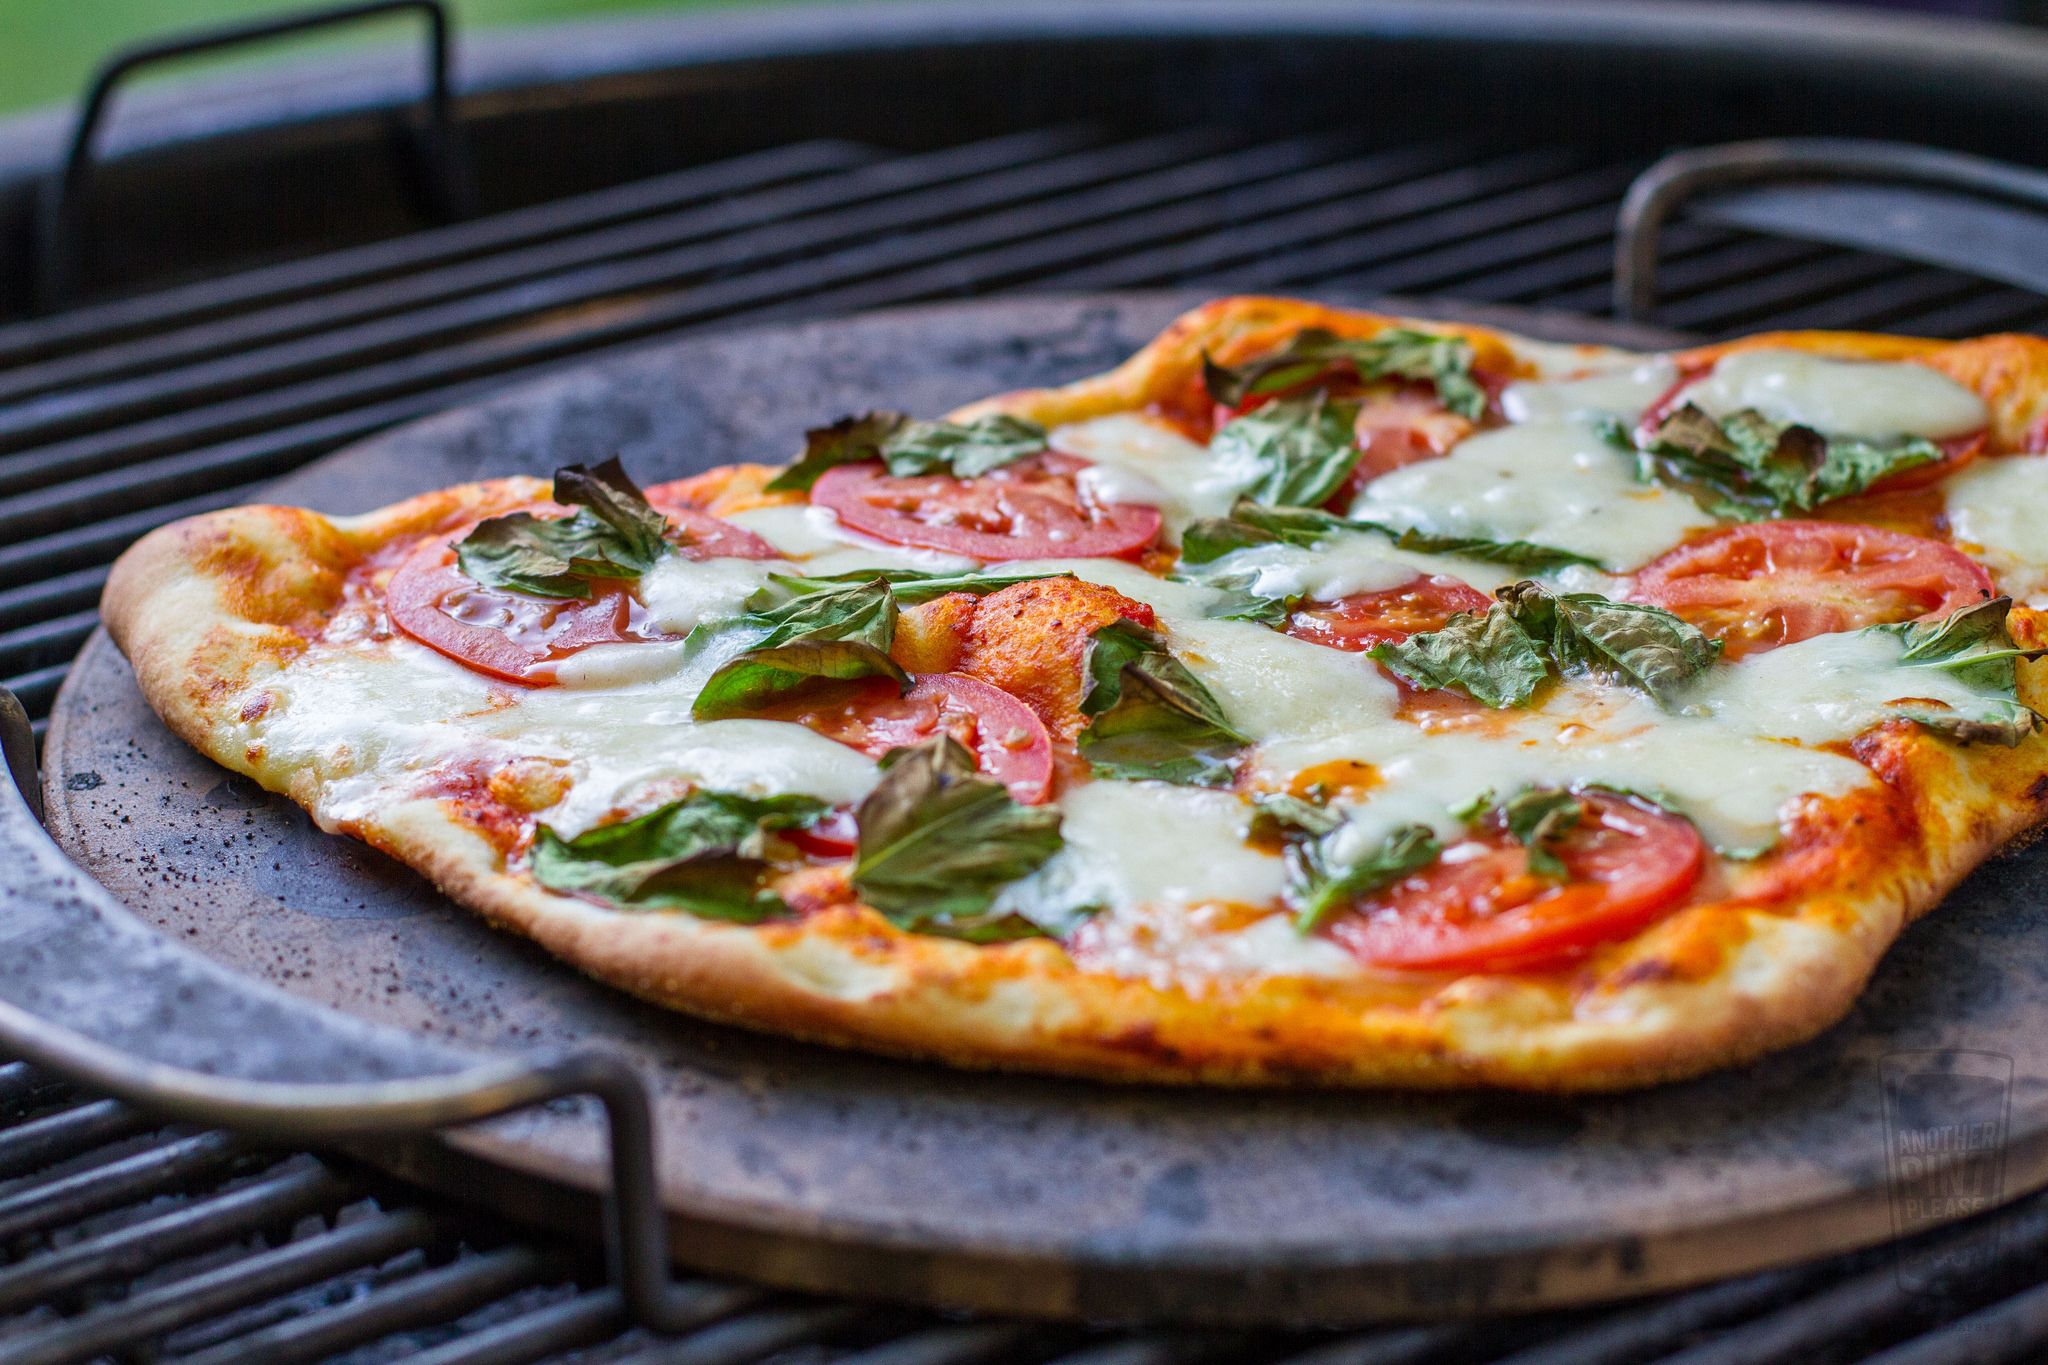 grilled pizza on weber summit charcoal grill.jpg